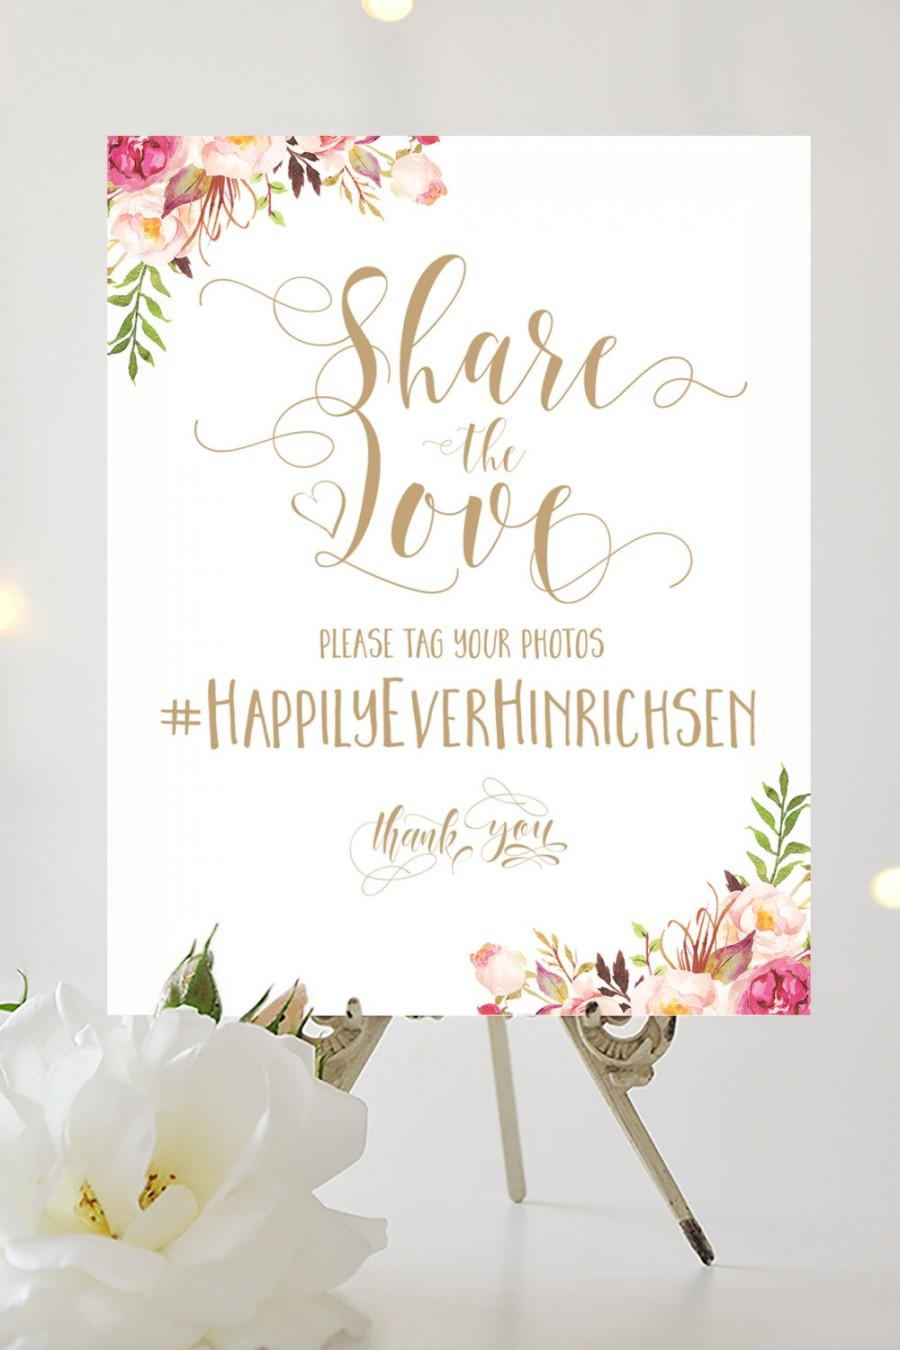 Share the love sign